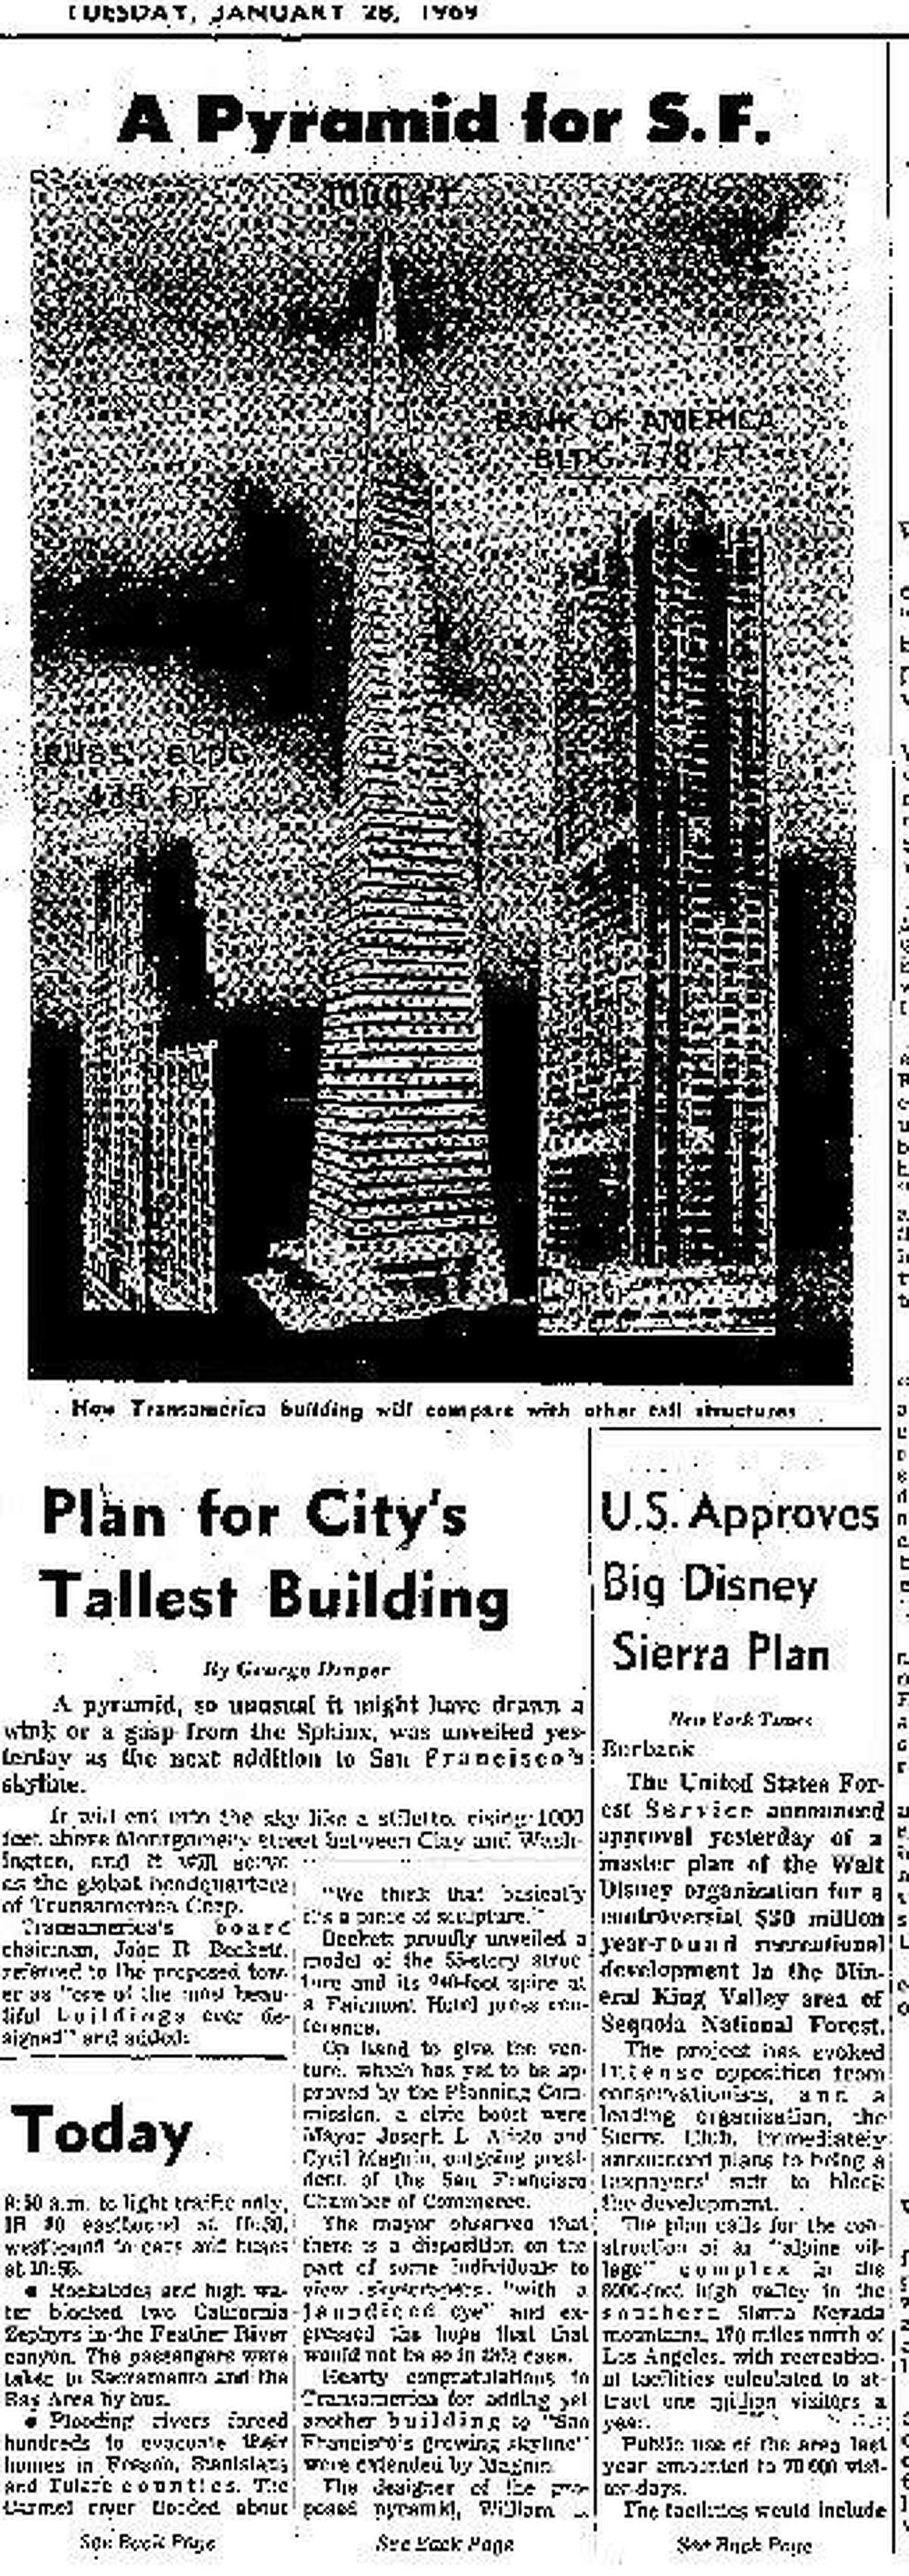 Transamerica Pyramid construction announced in 1969 There were some protests